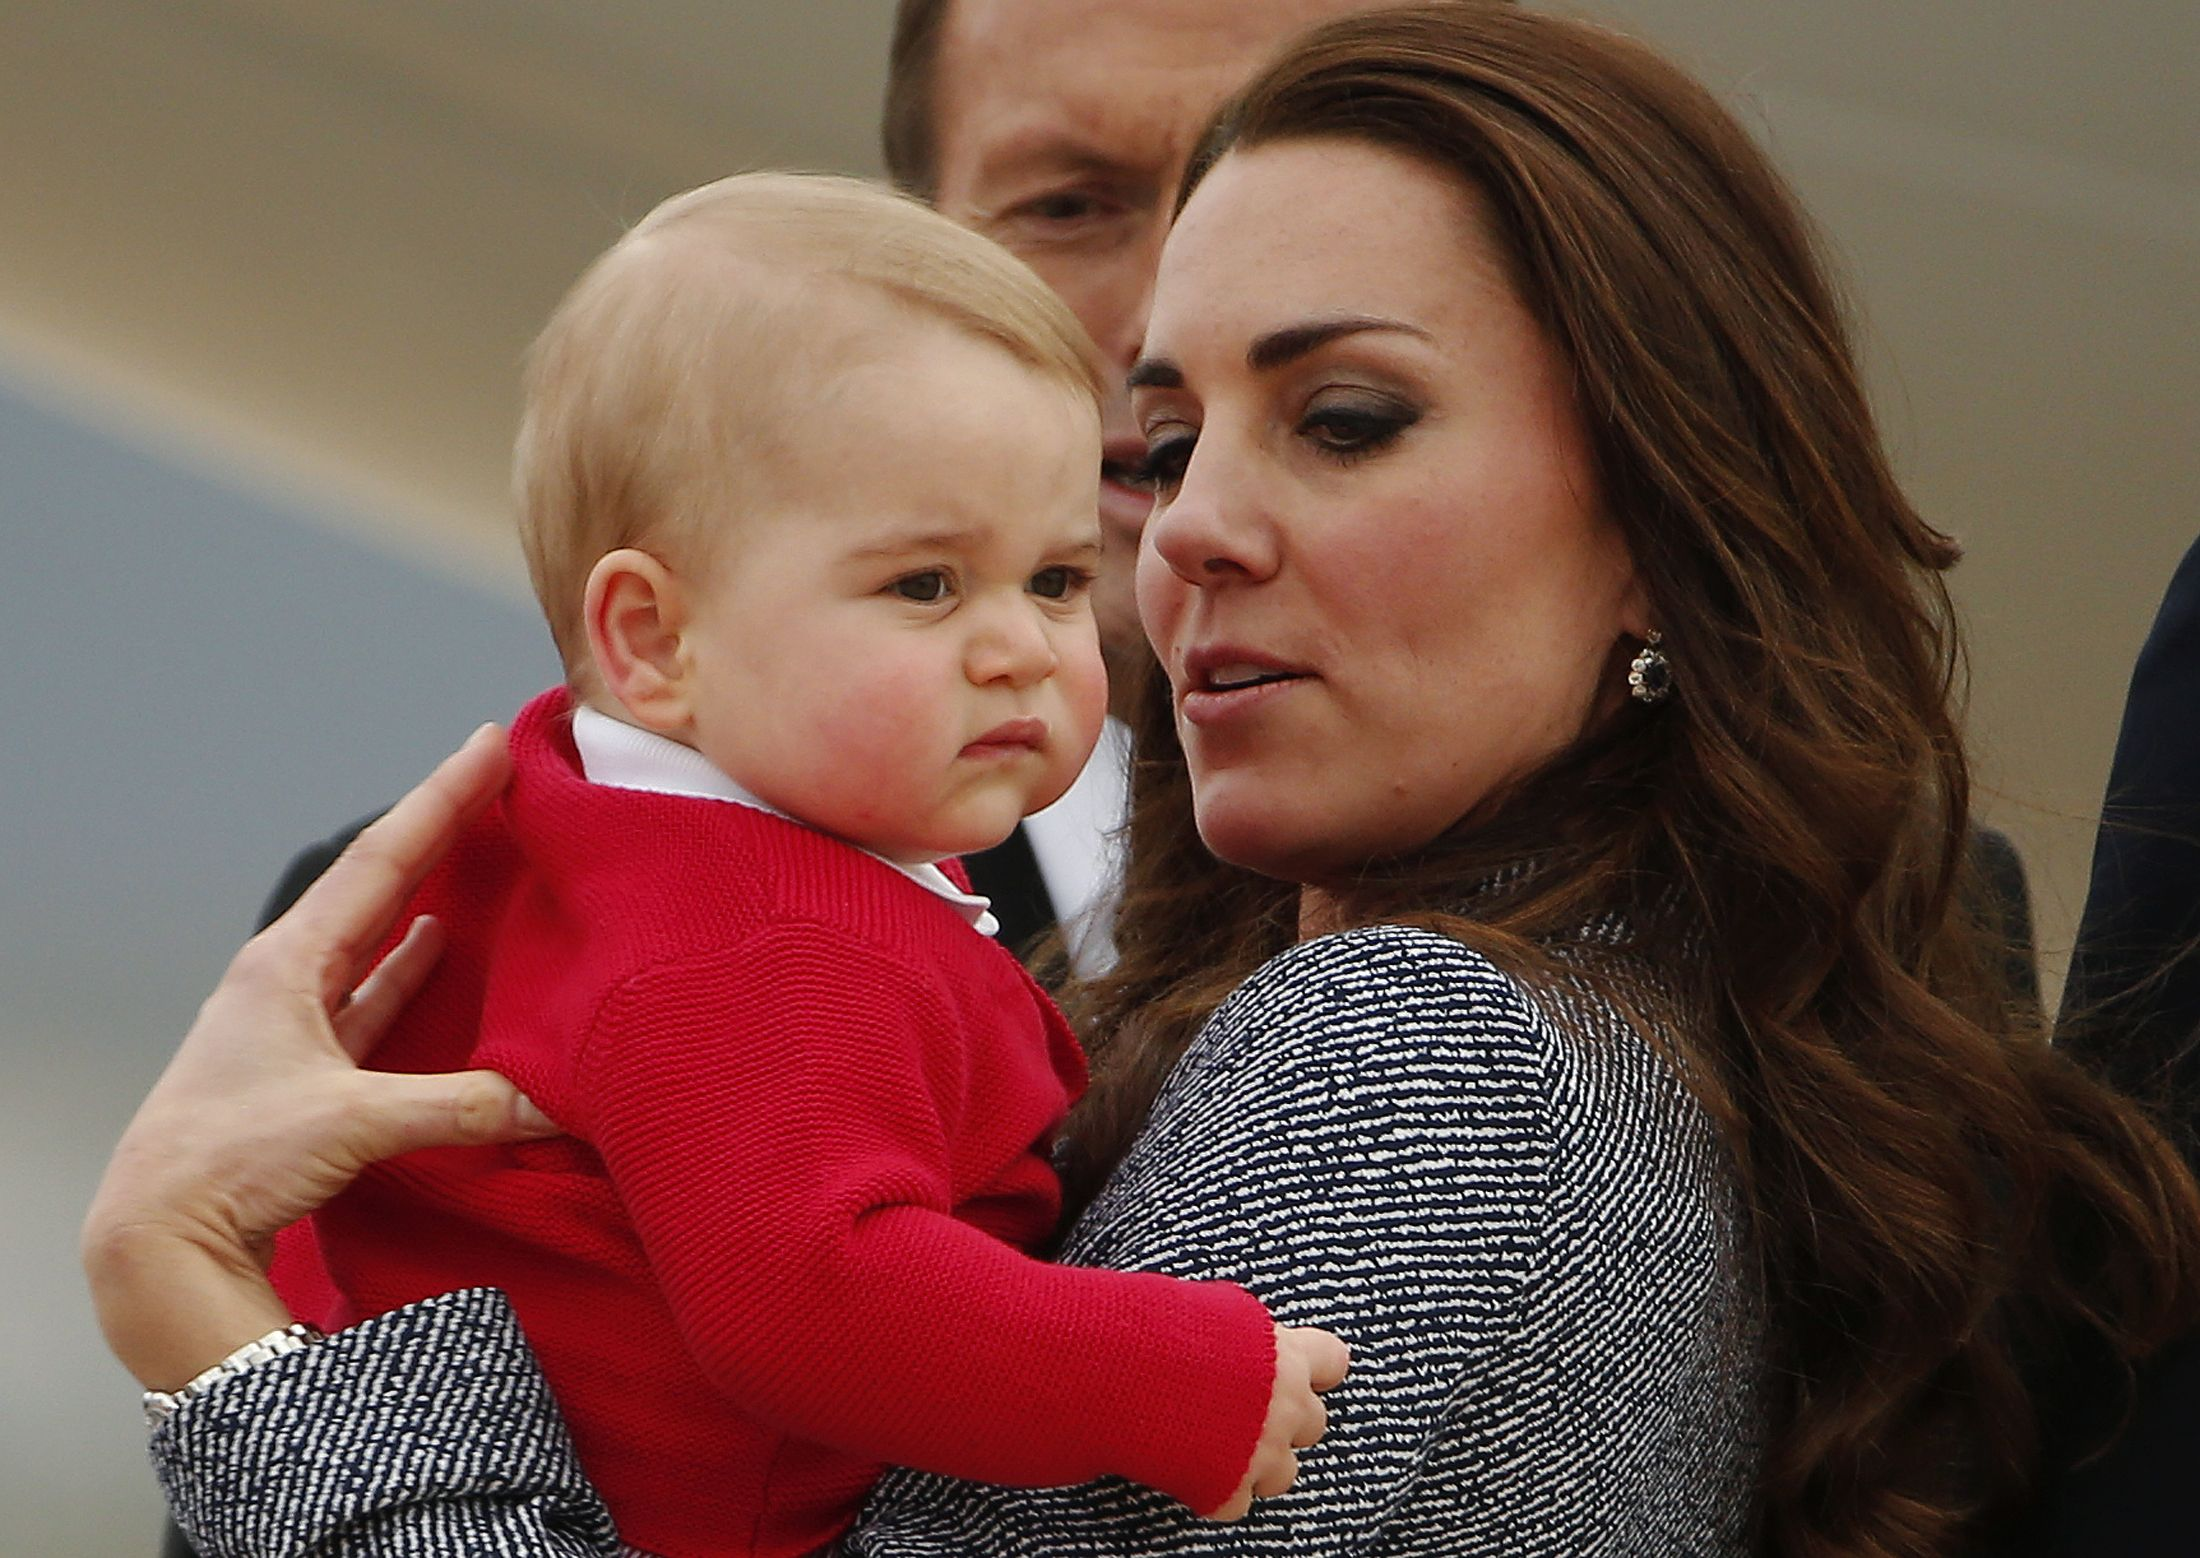 Britain's Catherine, the Duchess of Cambridge, holds her son Prince George as they prepare to board a plane with her husband Prince William (not pictured) to depart Canberra April 25, 2014. The Prince and his wife Kate are undertaking a 19-day official visit to New Zealand and Australia with their son Prince George. (REUTERS/Phil Noble)